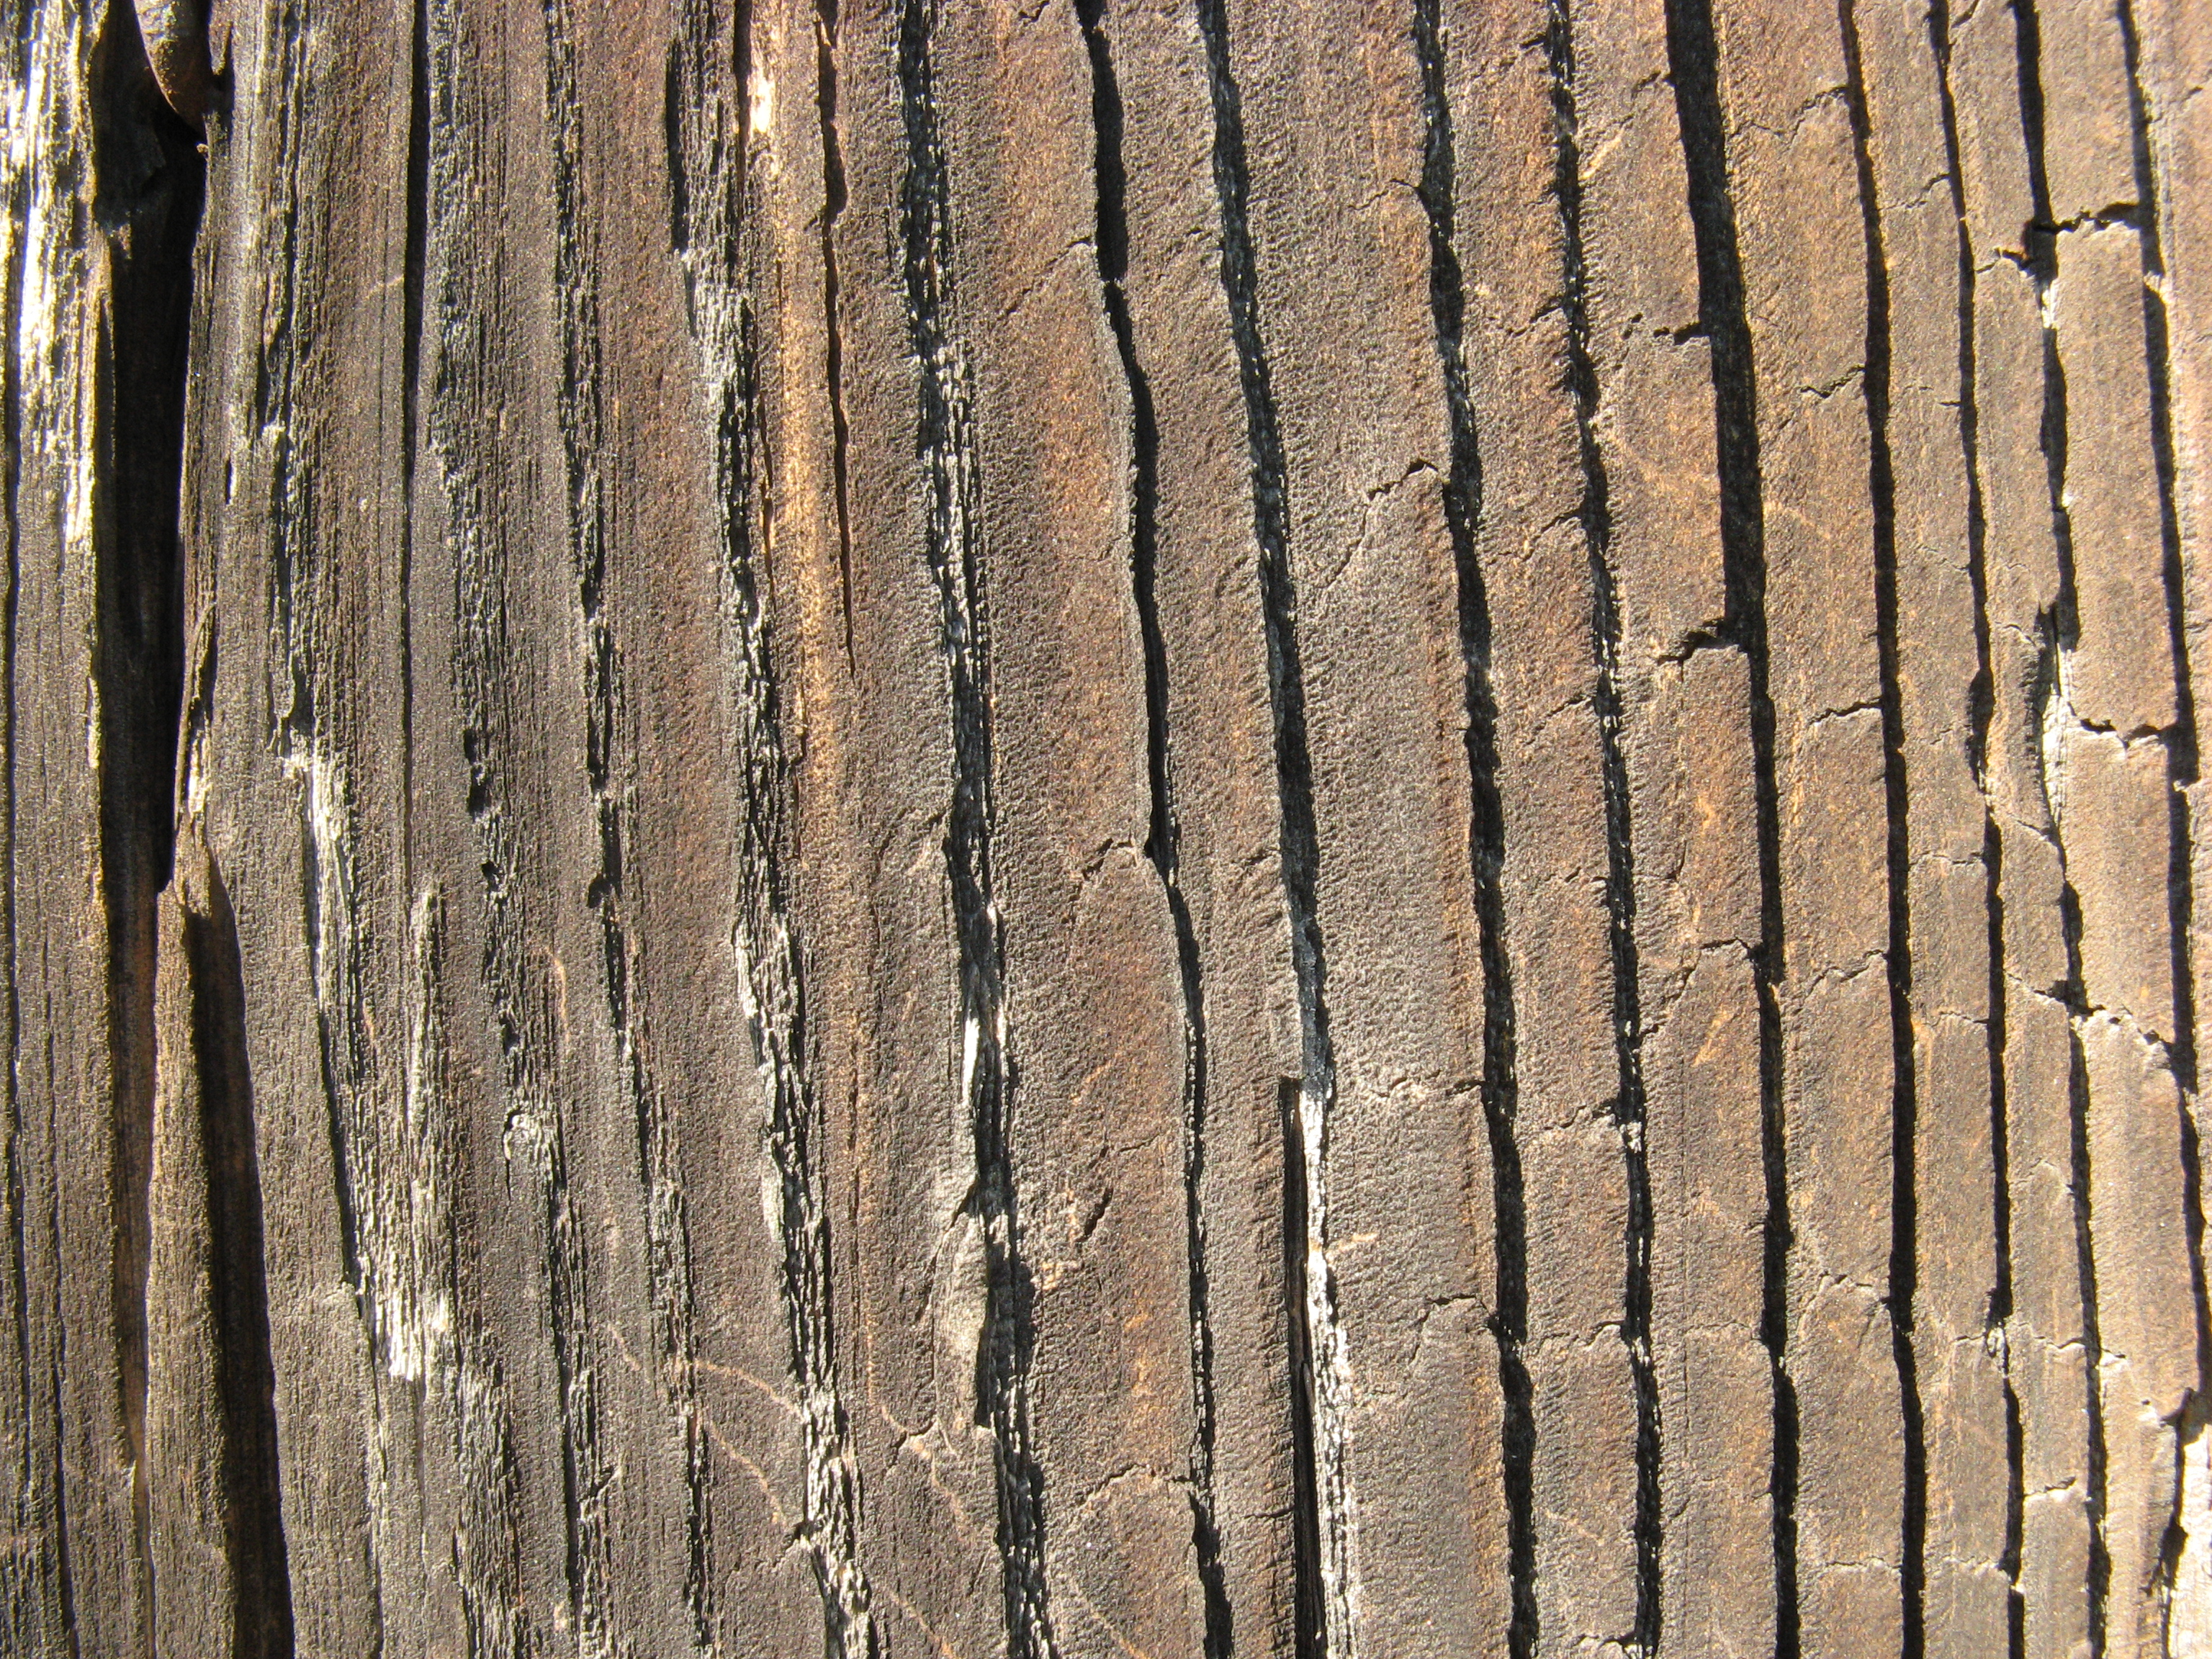 Cracked wood texture photo